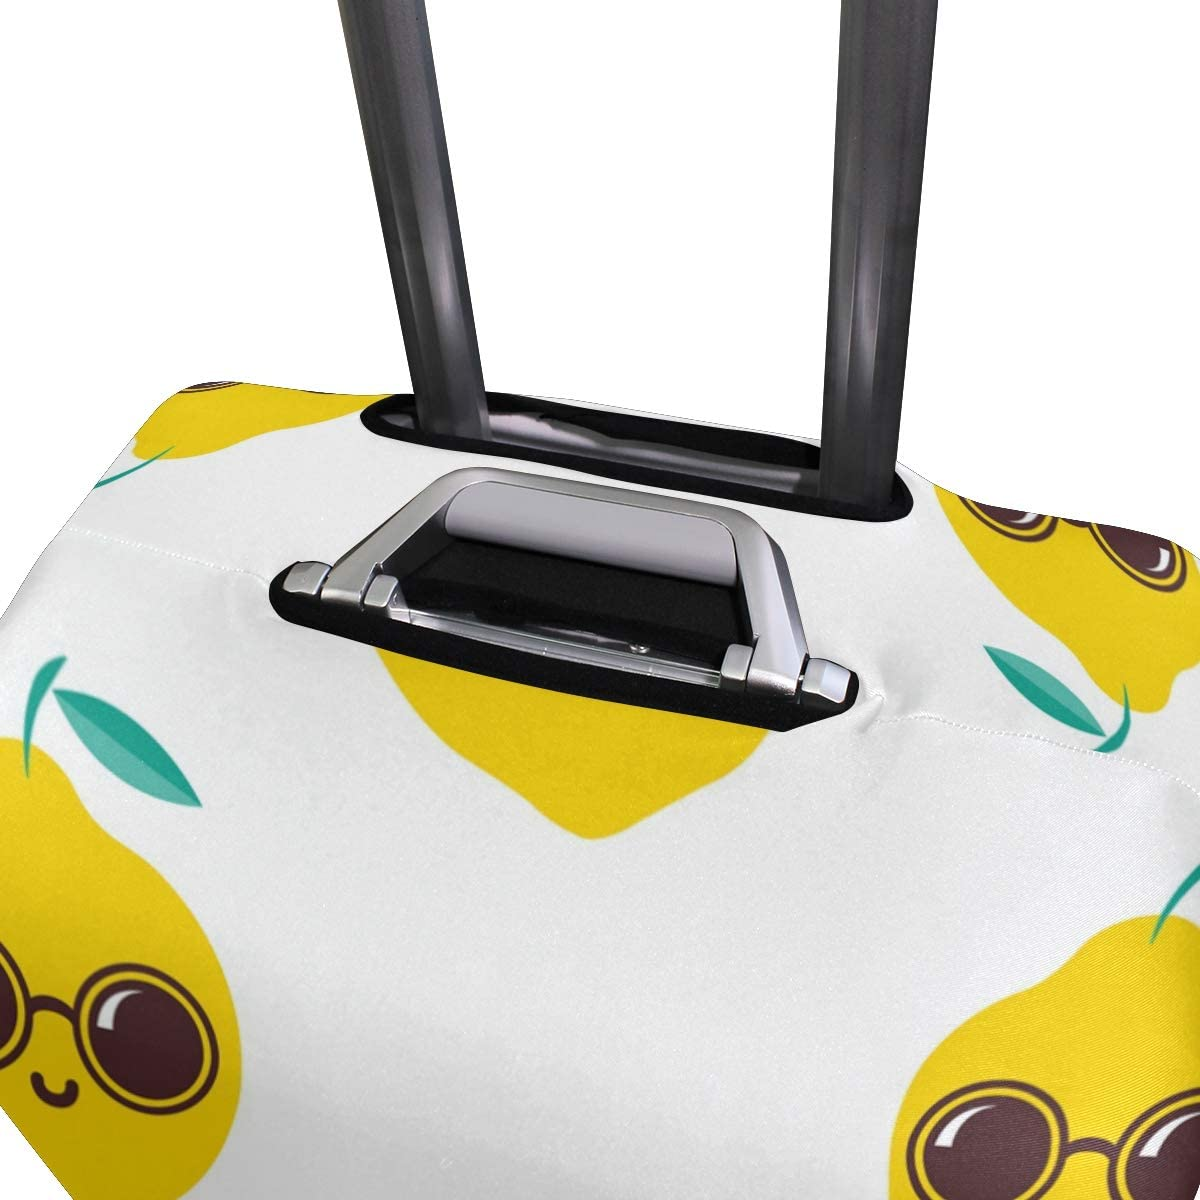 Travel Luggage Cover Cool Lemon With Sunglasses Suitcase Protector